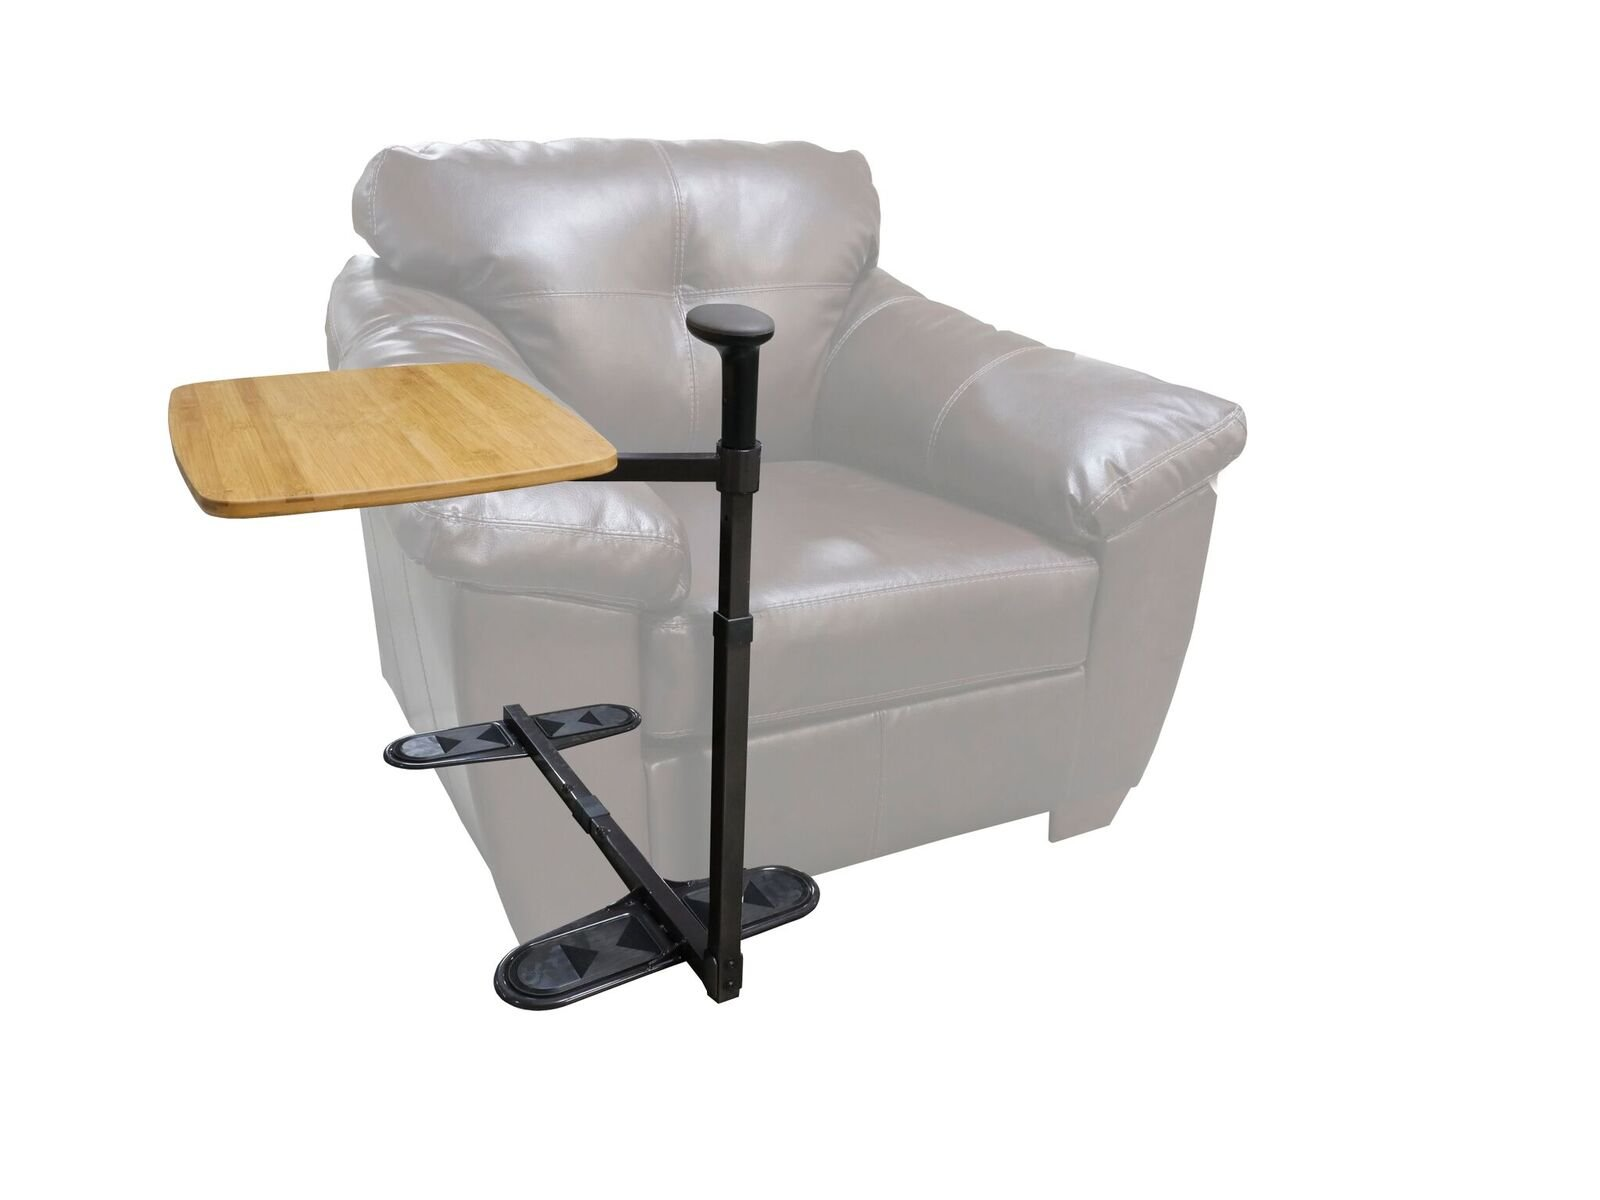 Omni Tray Table - Swivel Bamboo TV Tray  and Laptop Table & Support Mobility Handle + Daily Standing Support Aid by Stander